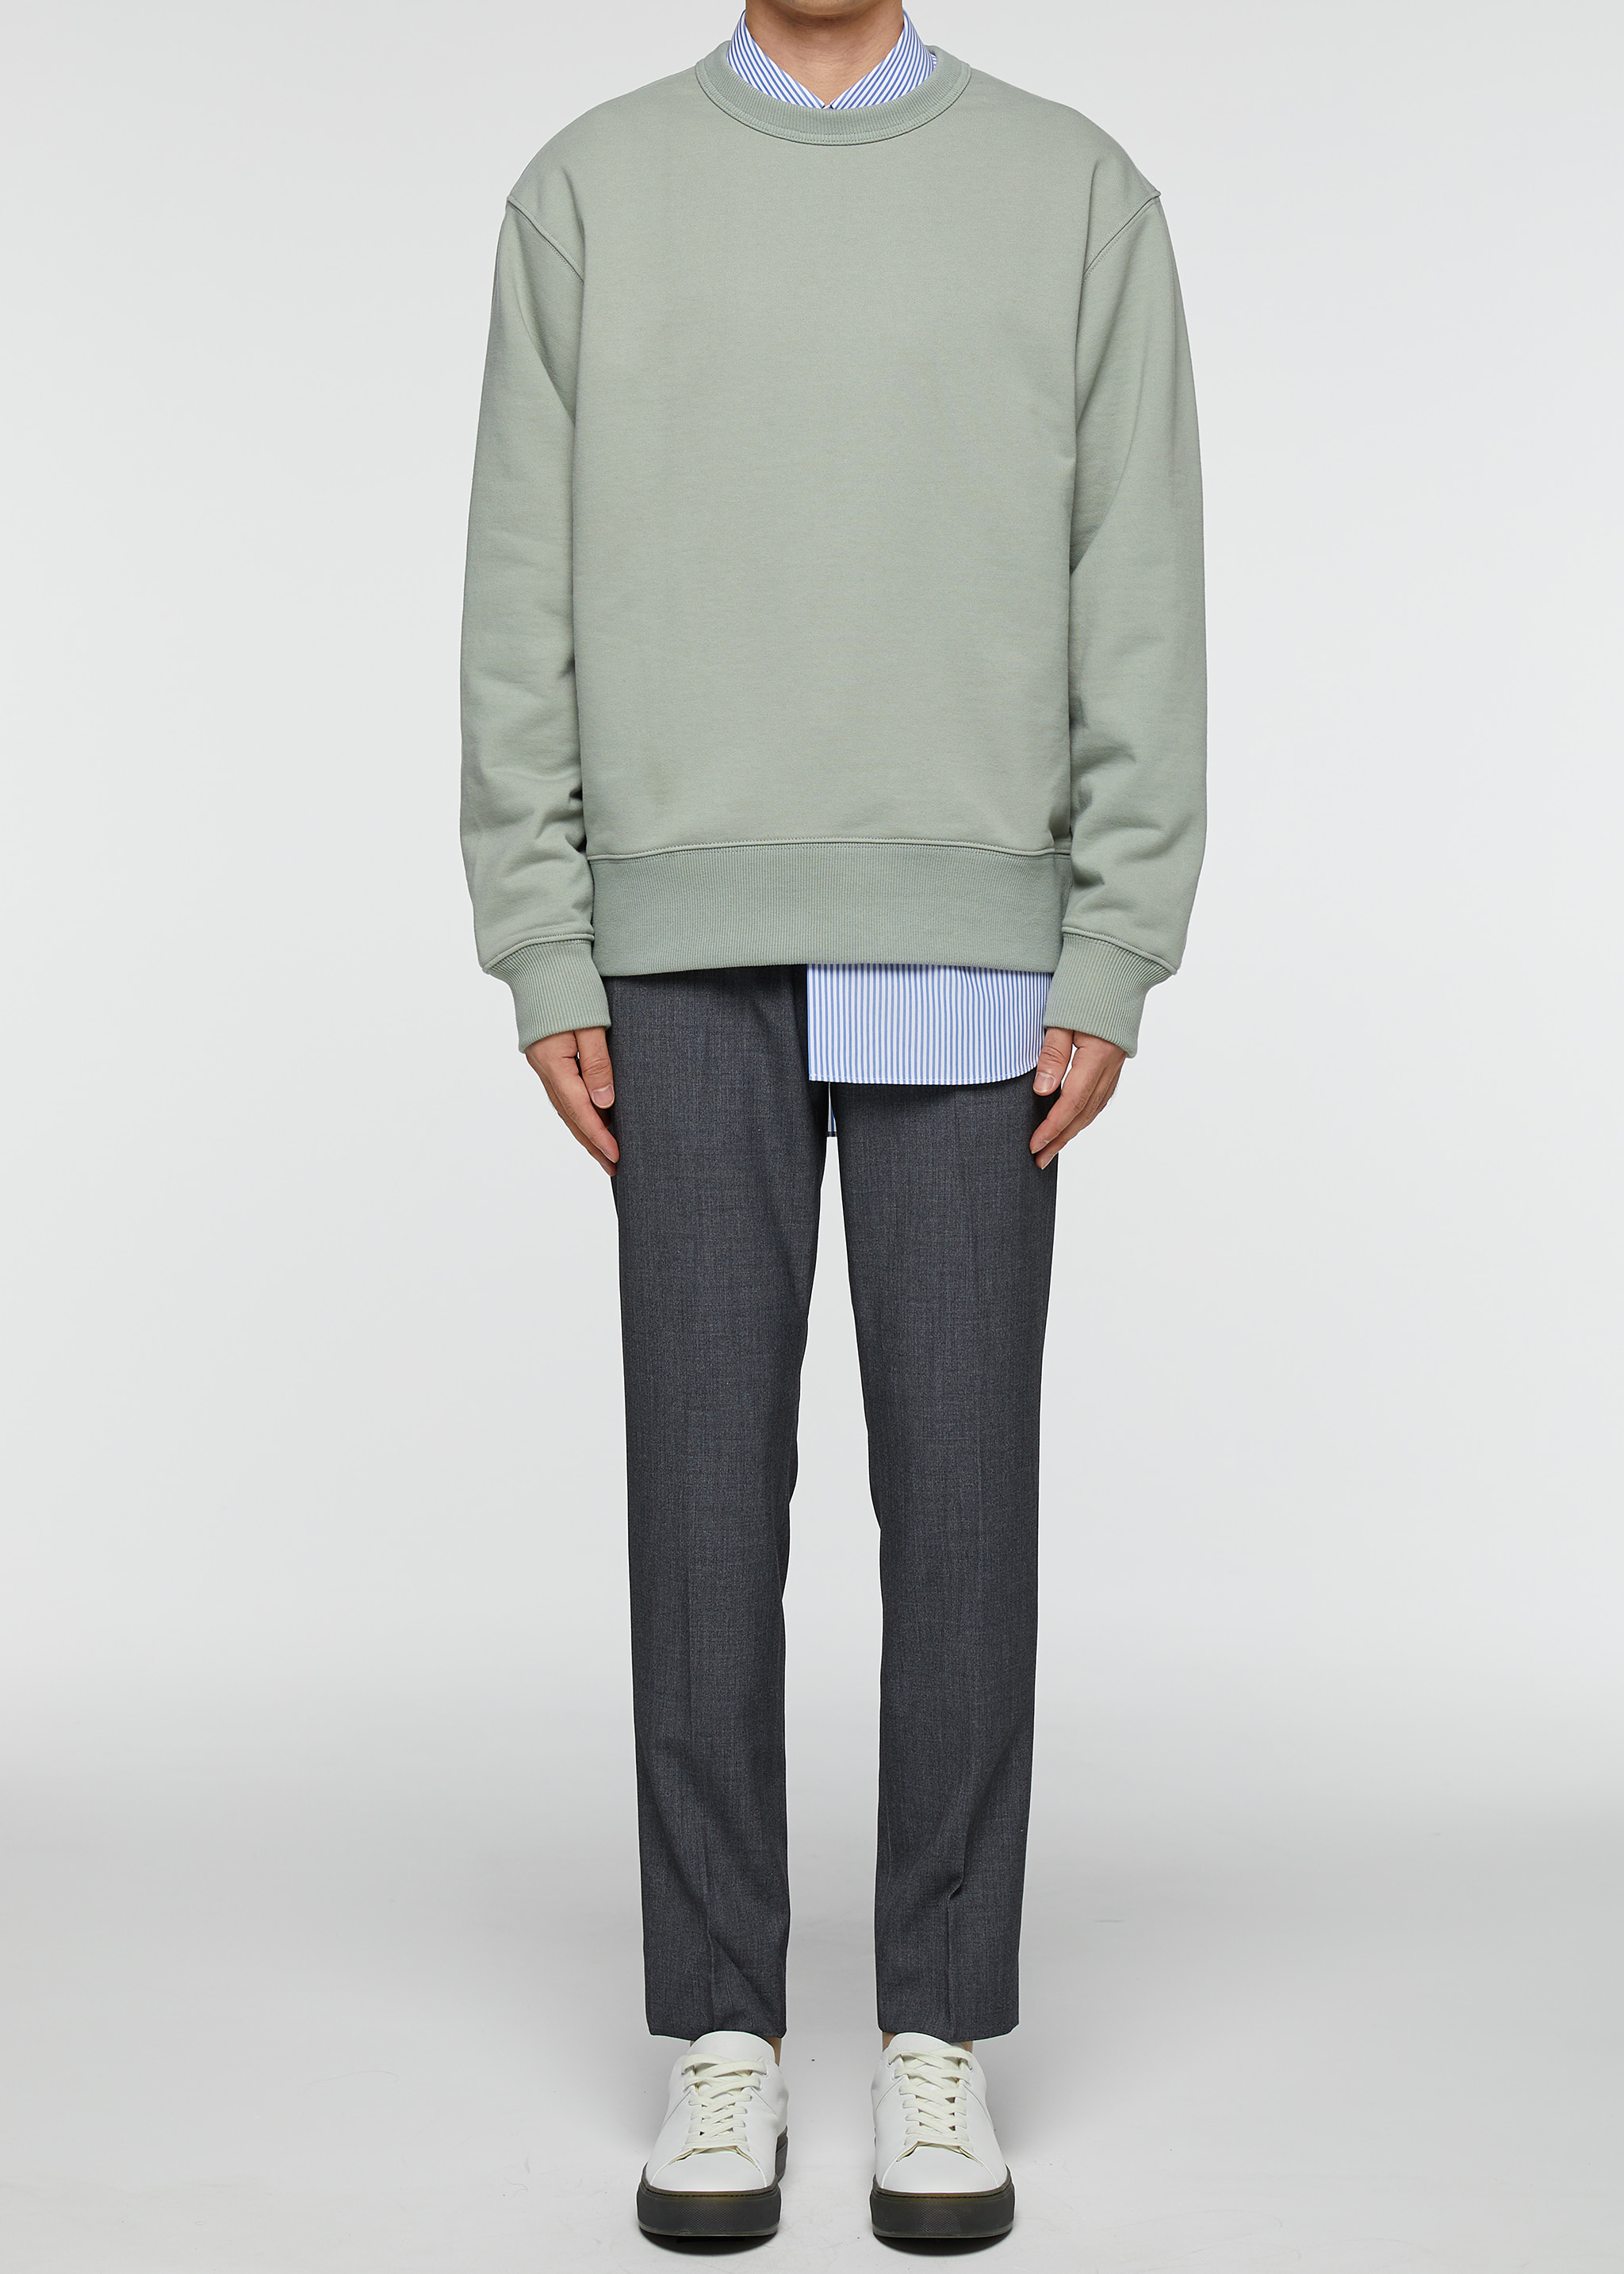 Errday Sweatshirt (Dusty Green)재입고완료